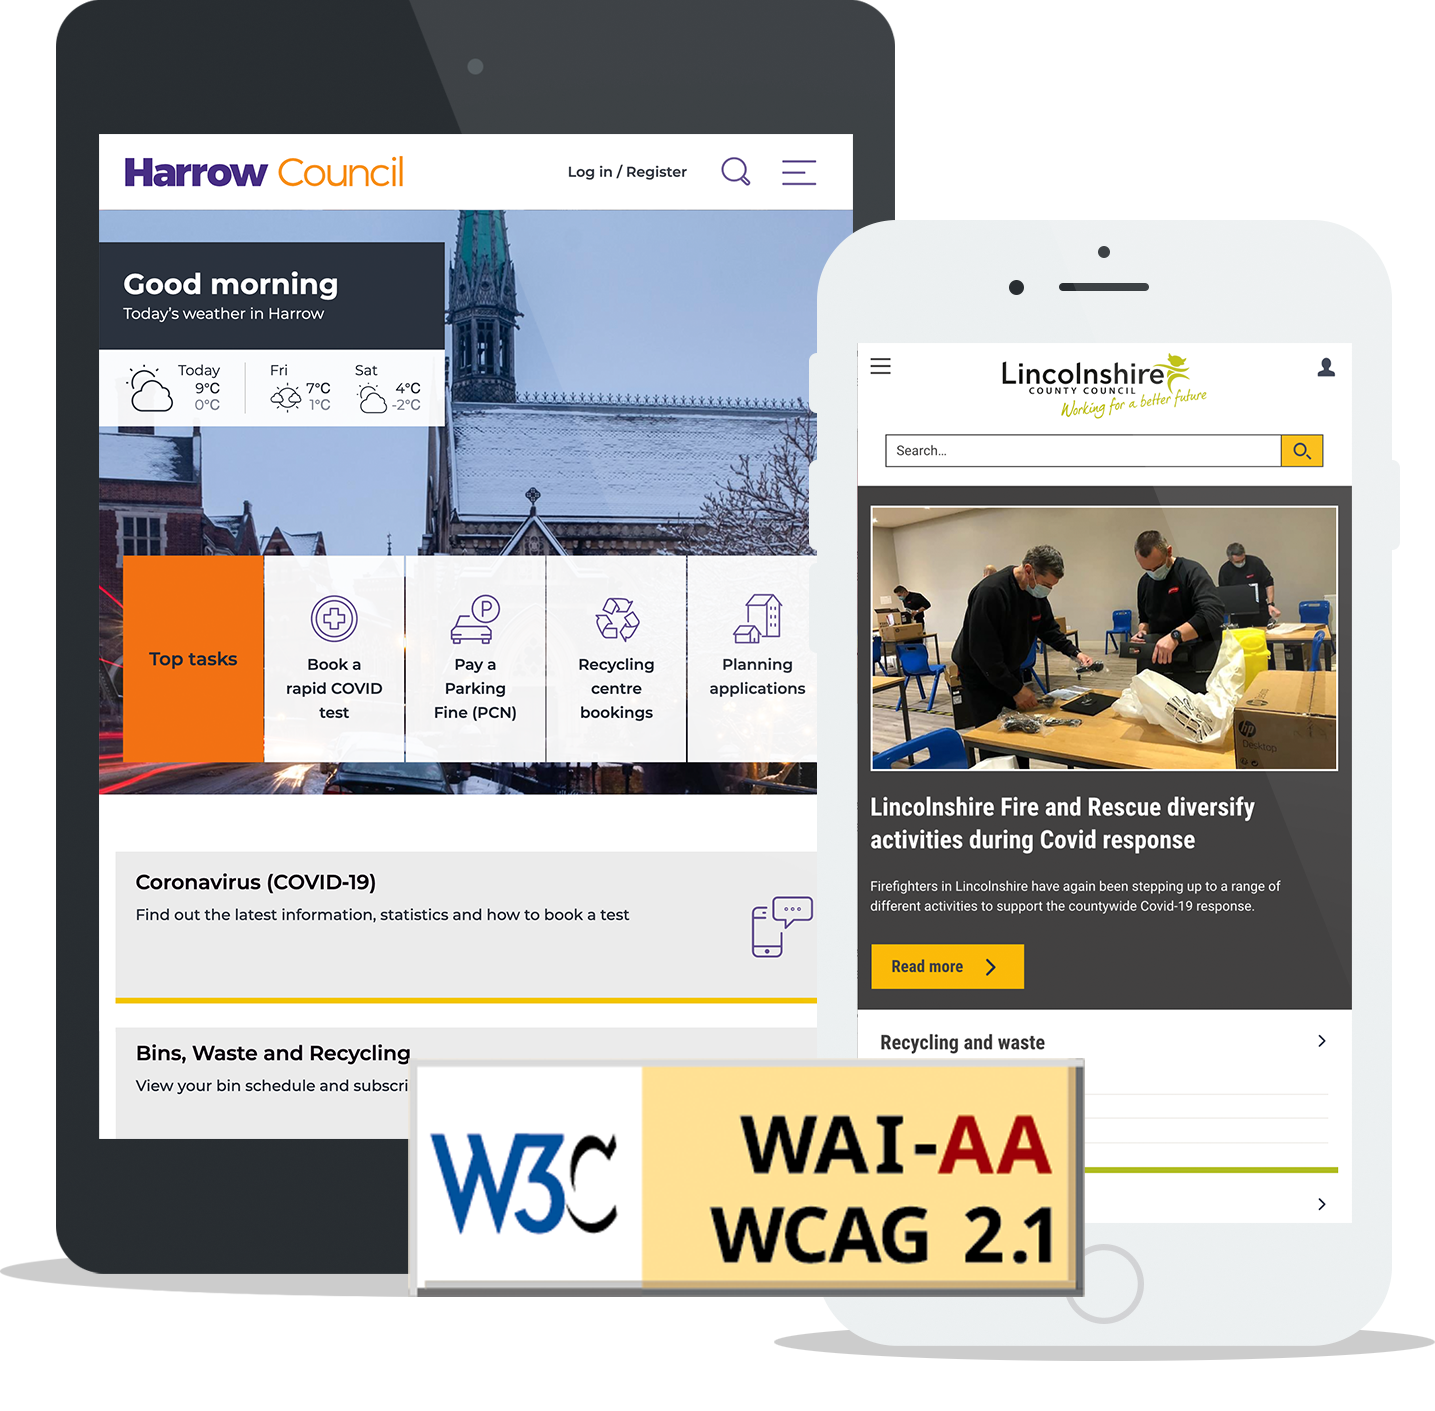 Harrow Council and Lincolnshire County Council's website homepages and W3C/WCAG AA logo